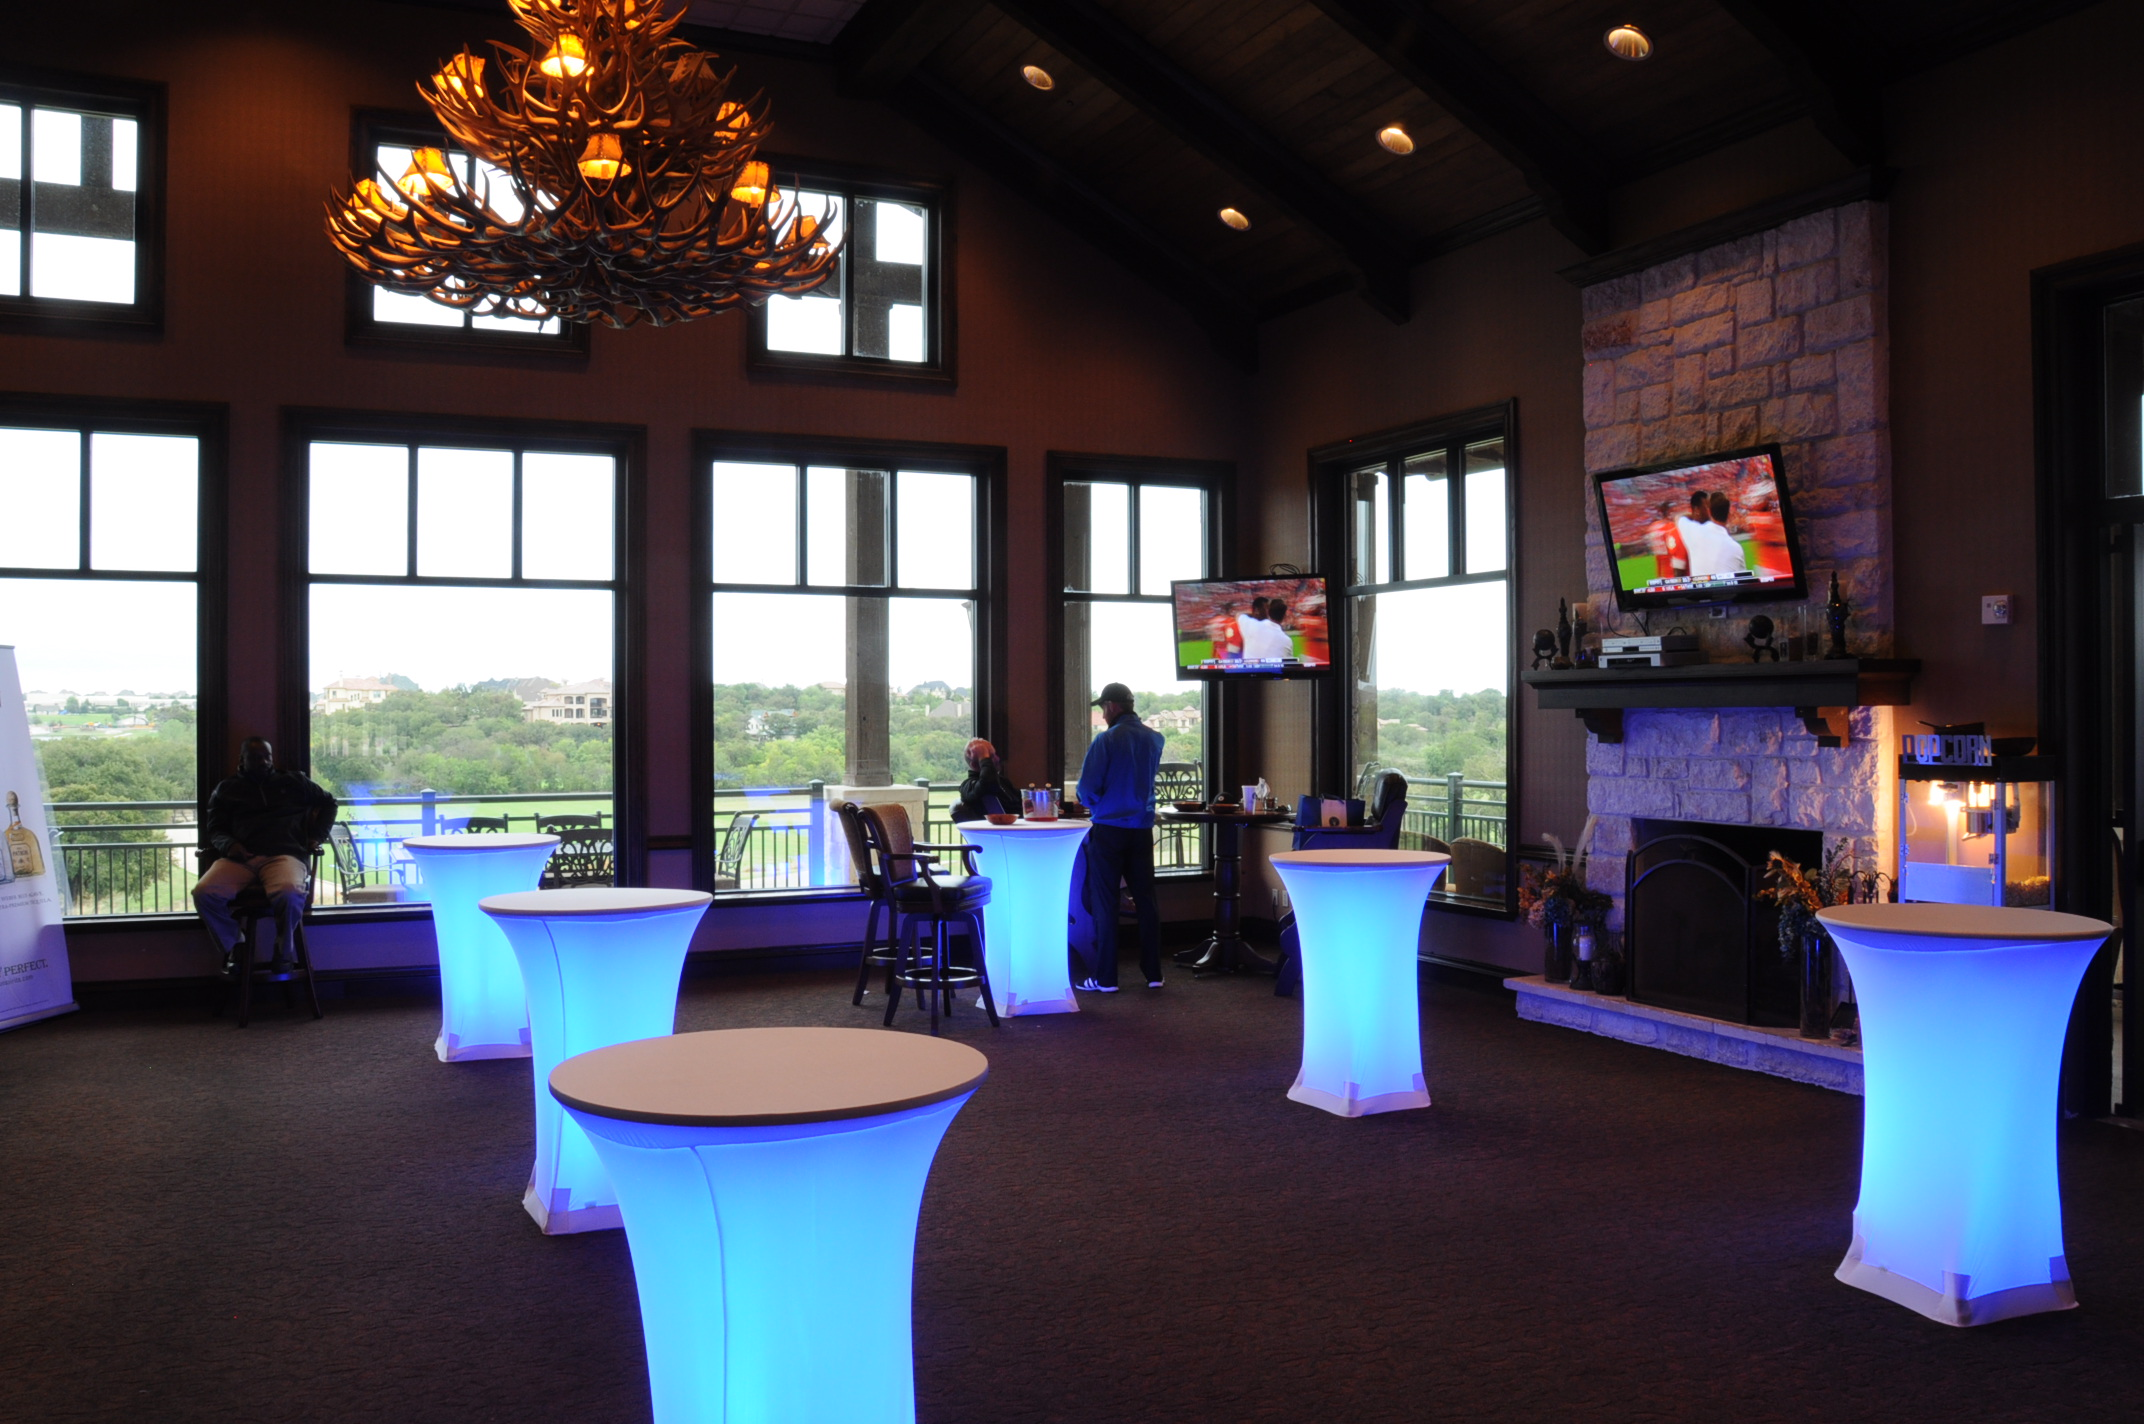 Tower Club In Dallas Sheraton Windsor Carrollton Museum Of Art And Several Other Venues The Dfw Area